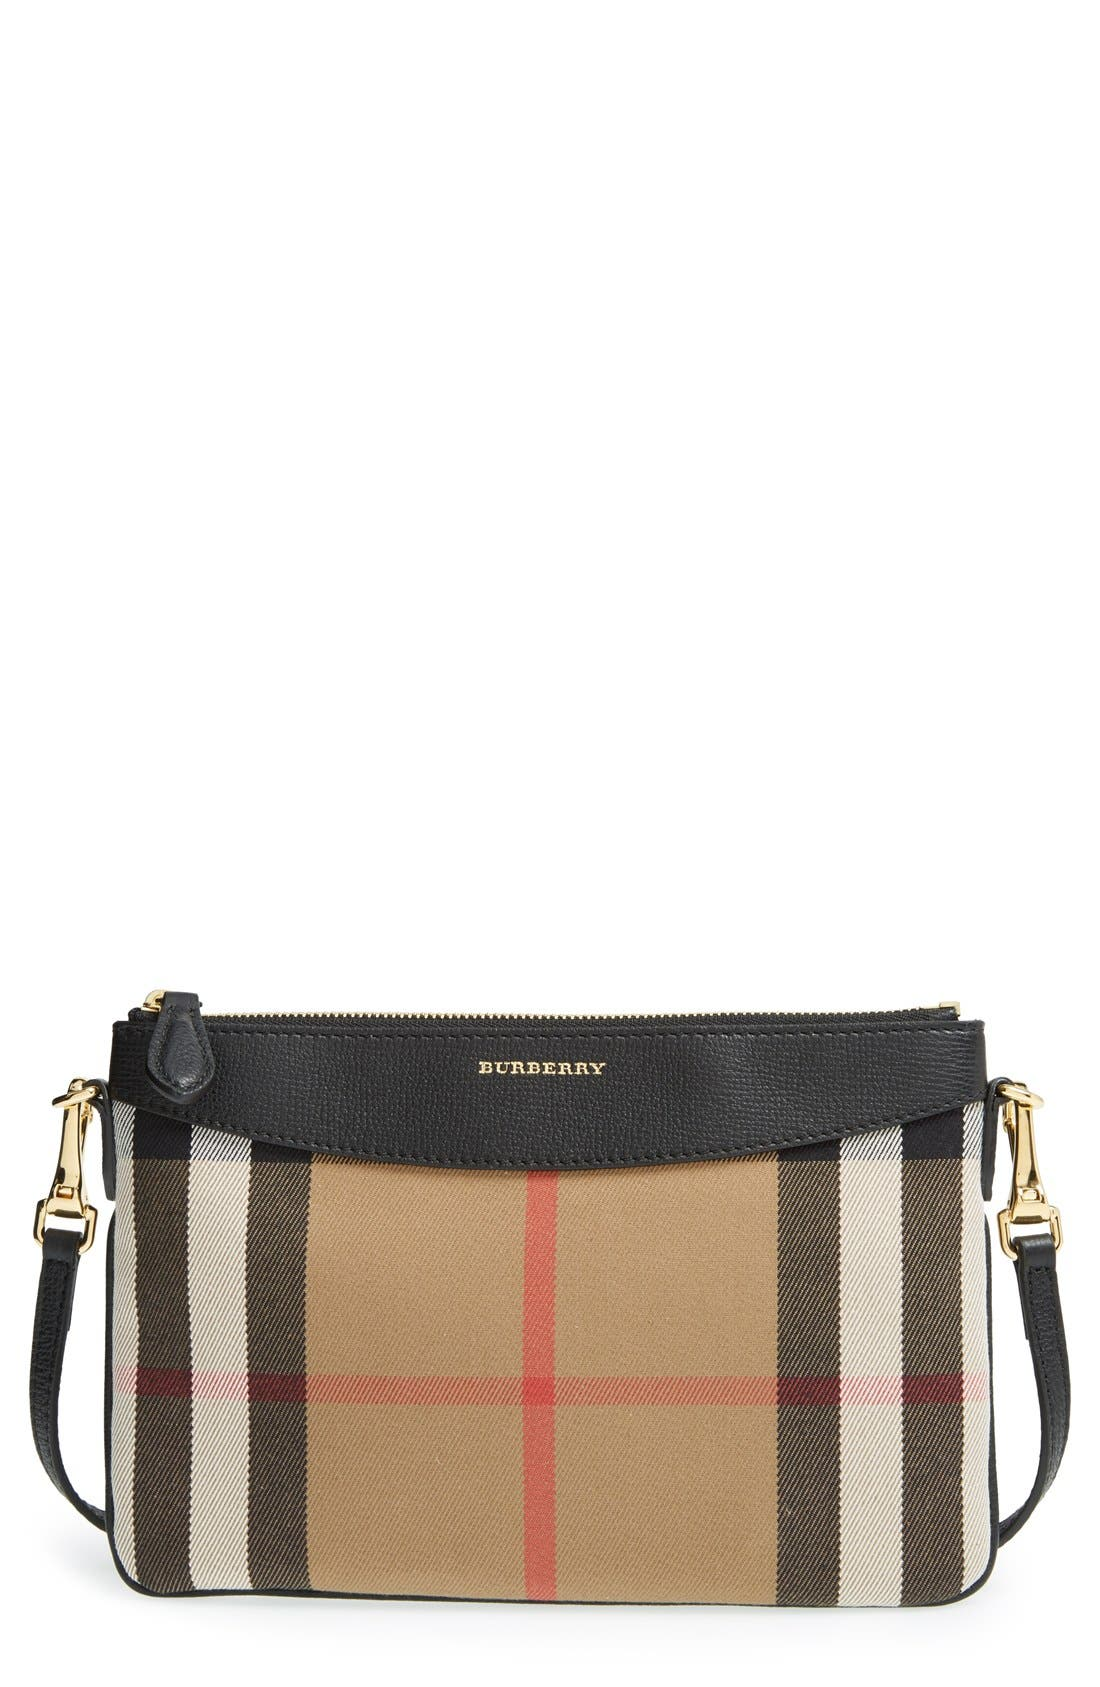 Burberry 'Peyton - House Check' Crossbody Bag